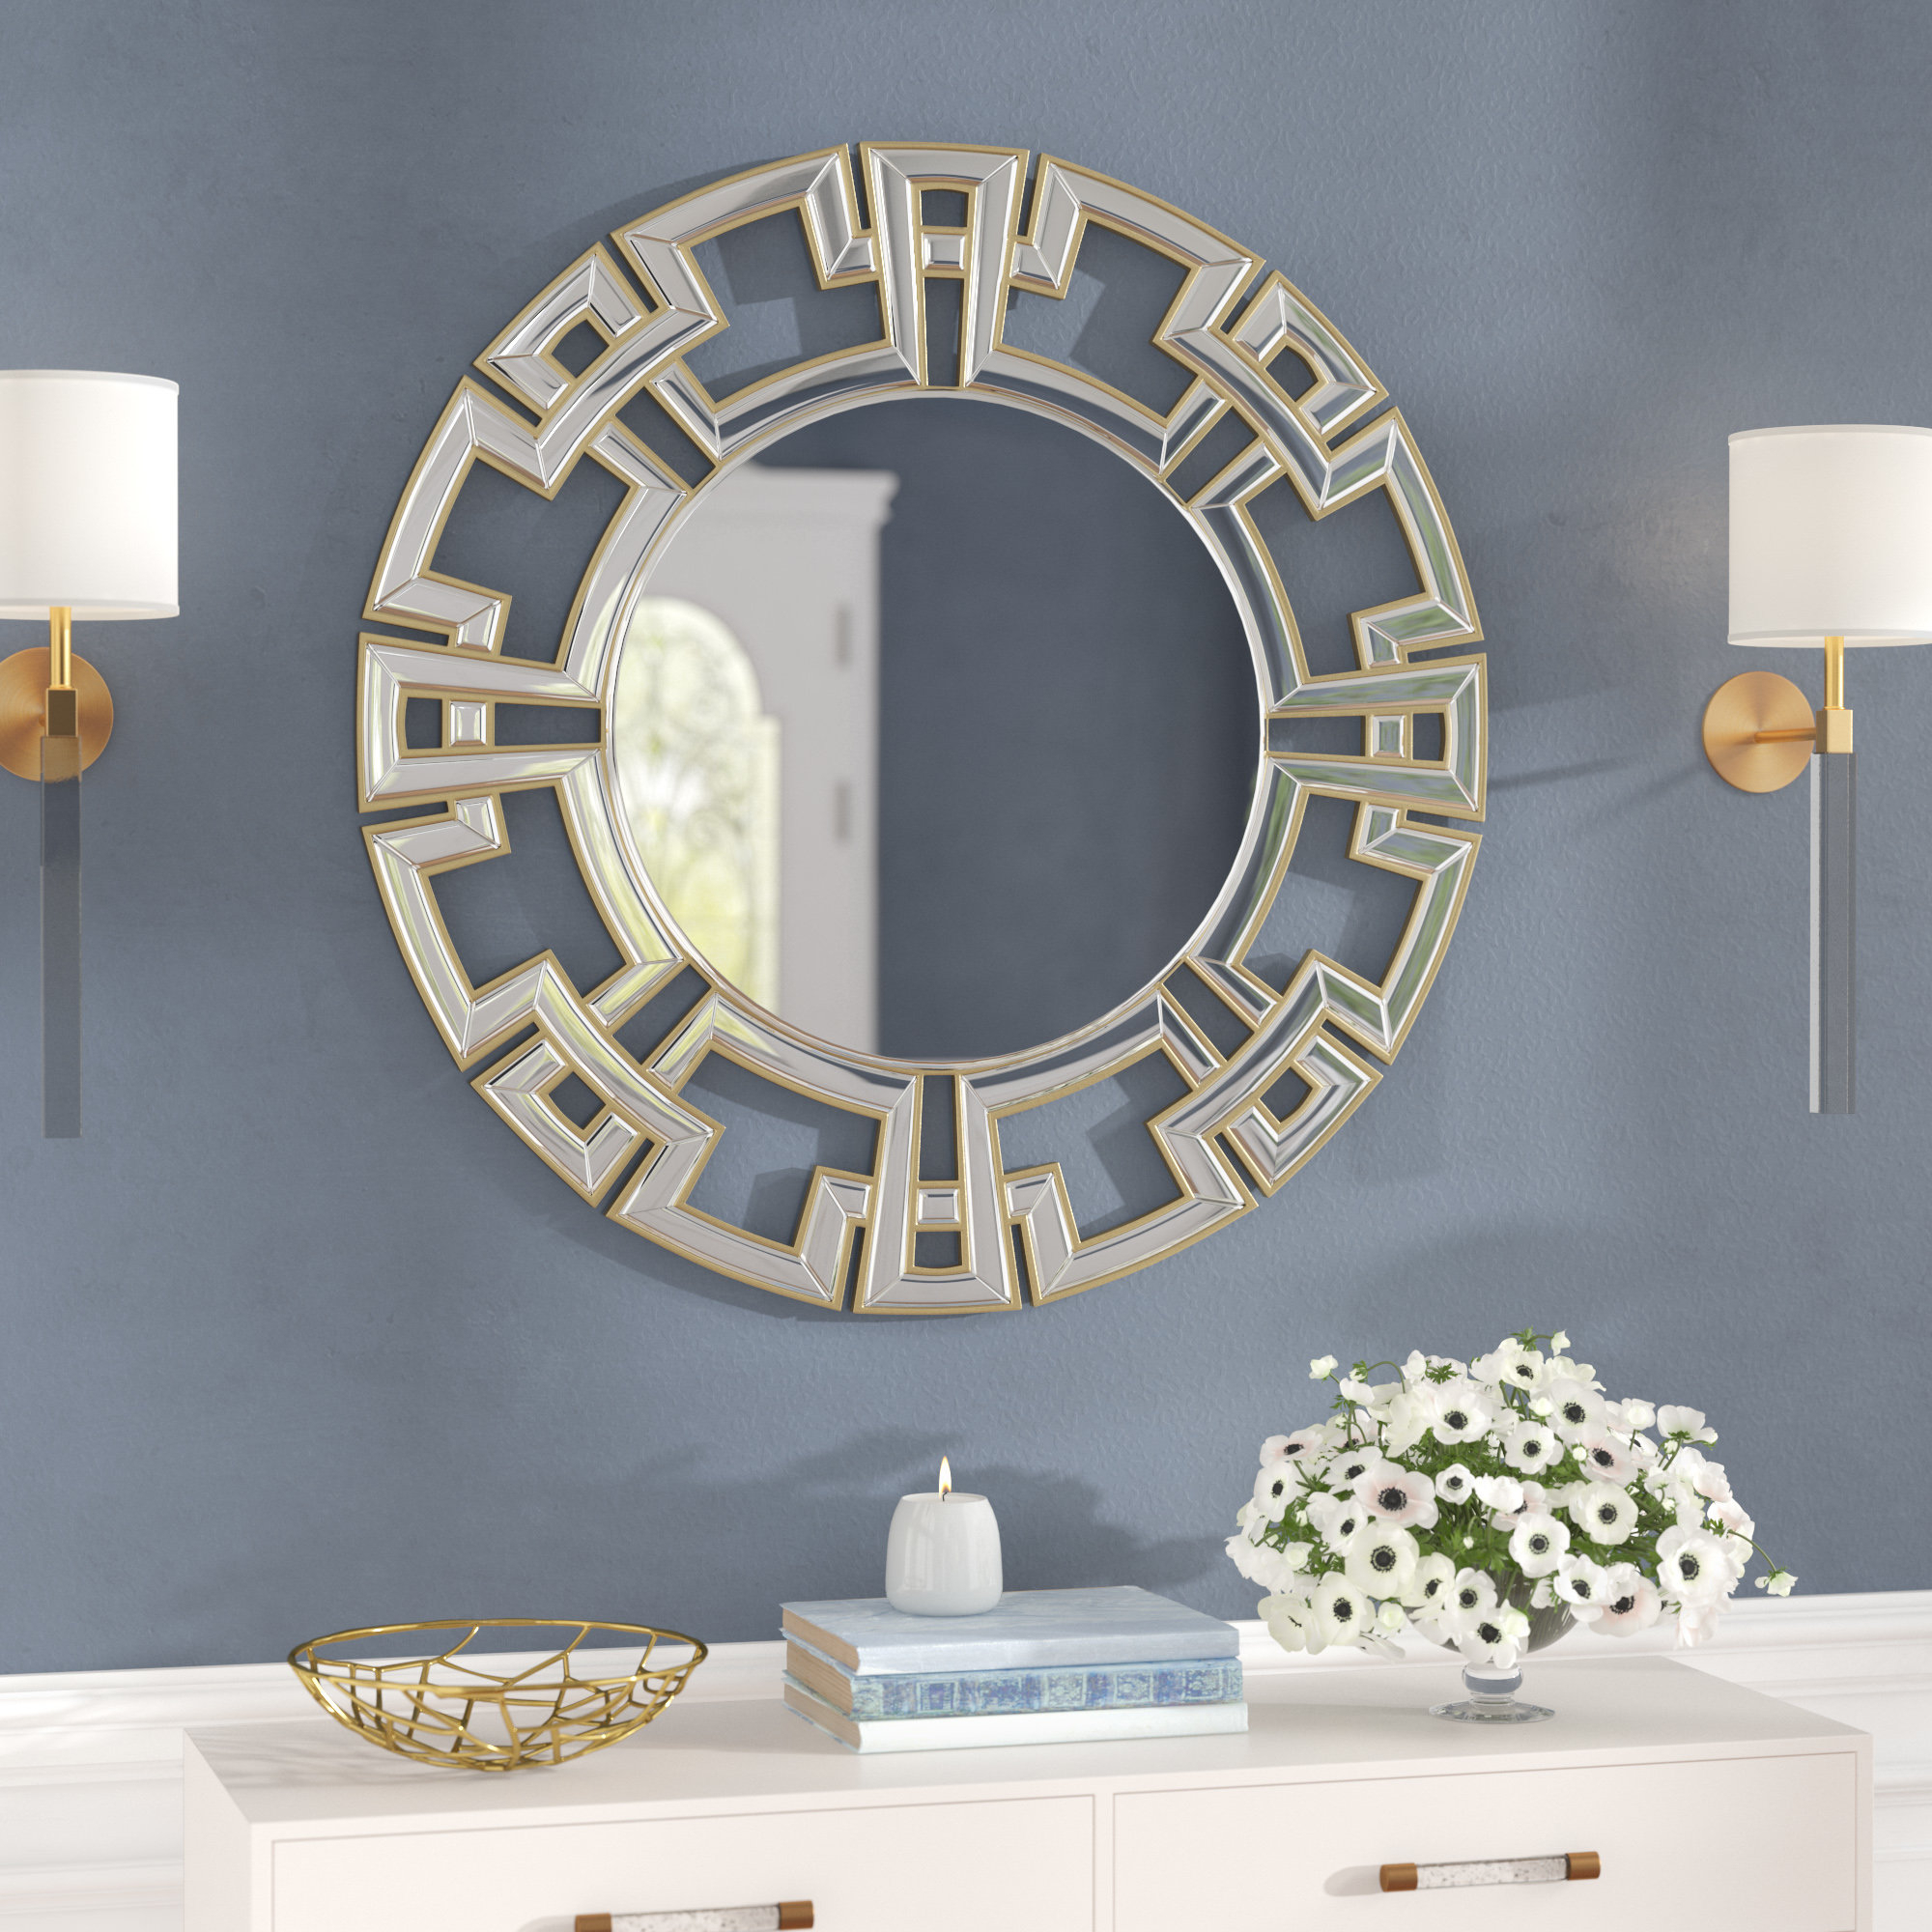 Most Current Tata Openwork Round Wall Mirrors Throughout Tata Openwork Round Wall Mirror (View 5 of 20)